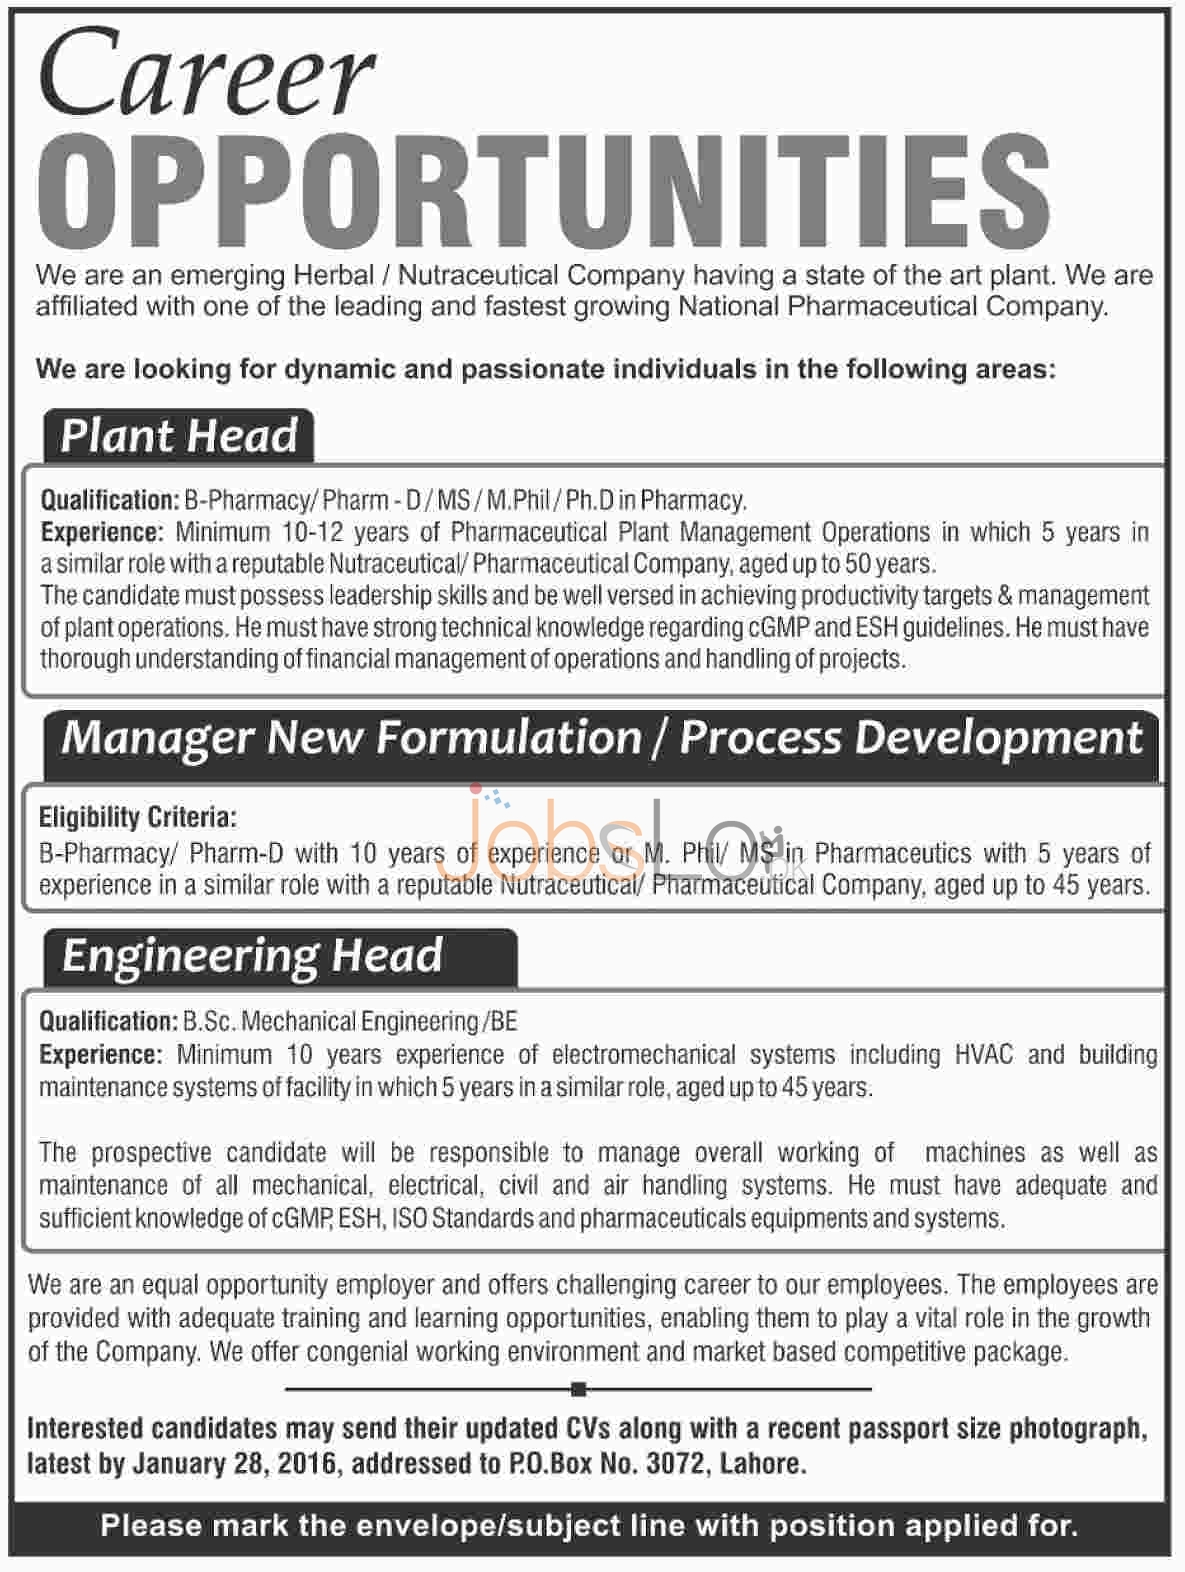 Herbal/ Nutraceutical Company 2016 Jobs in Lahore